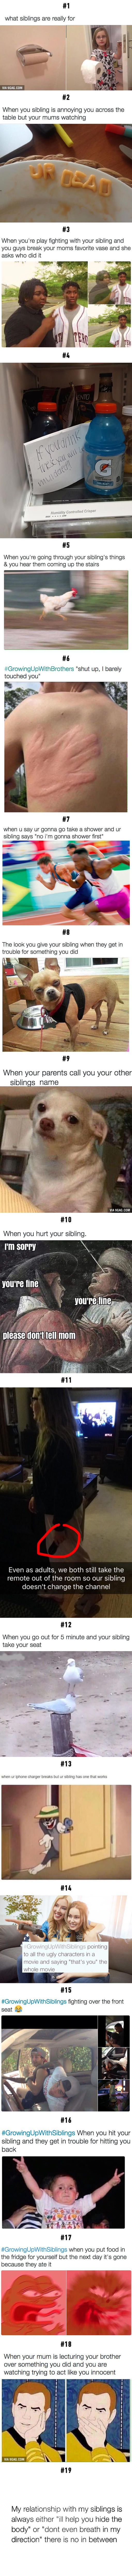 19 Perks Of Having A Sibling- I can literally relate to all of these XD